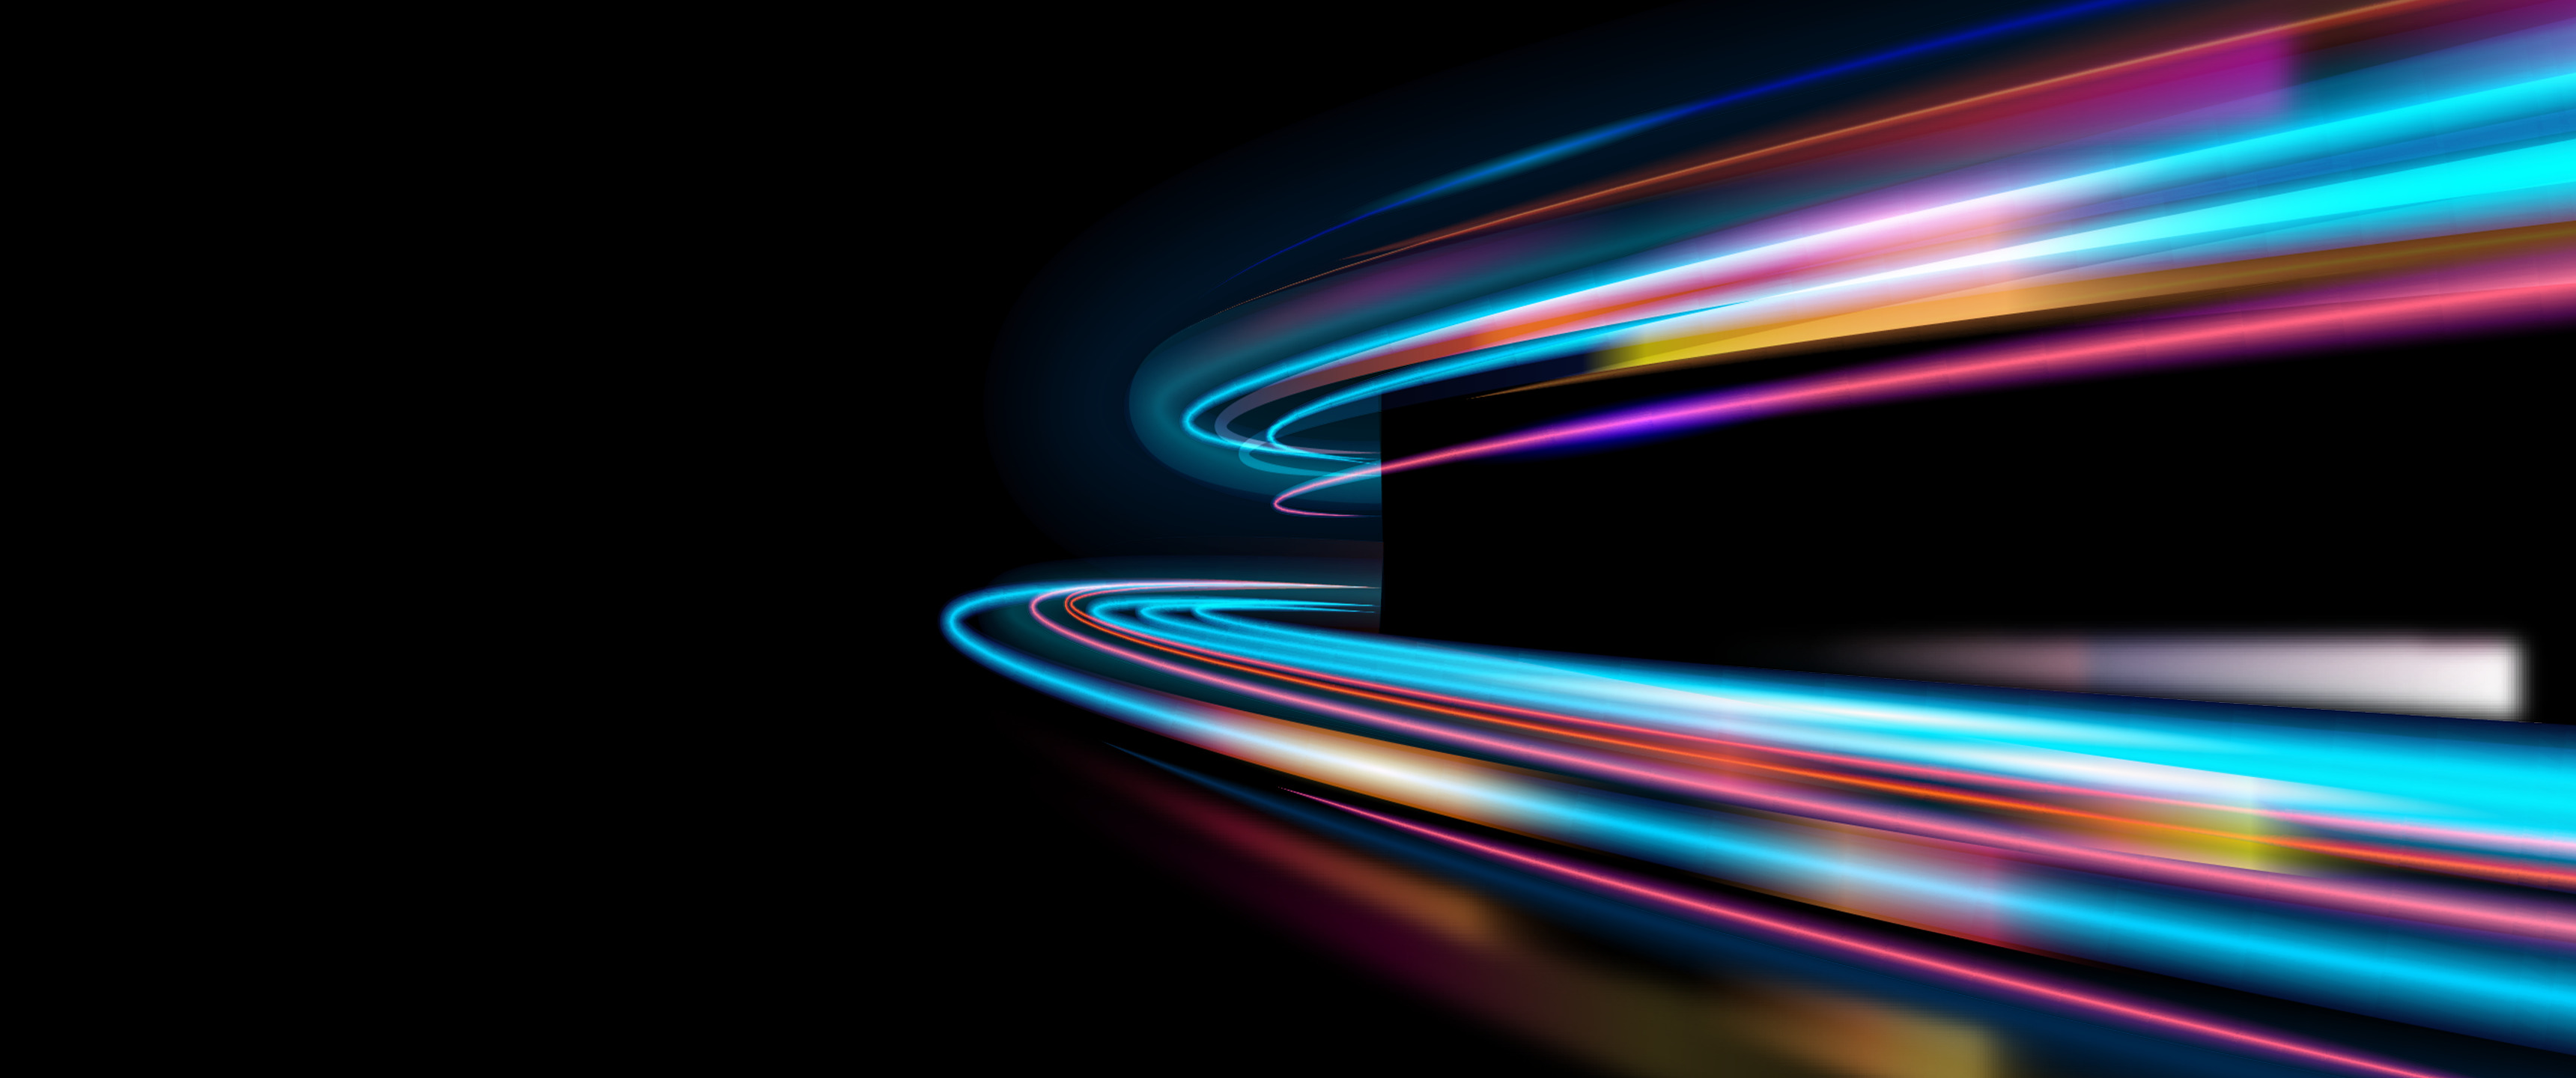 Long Exposure Abstract Dark 4k Hd Abstract 4k Wallpapers Images